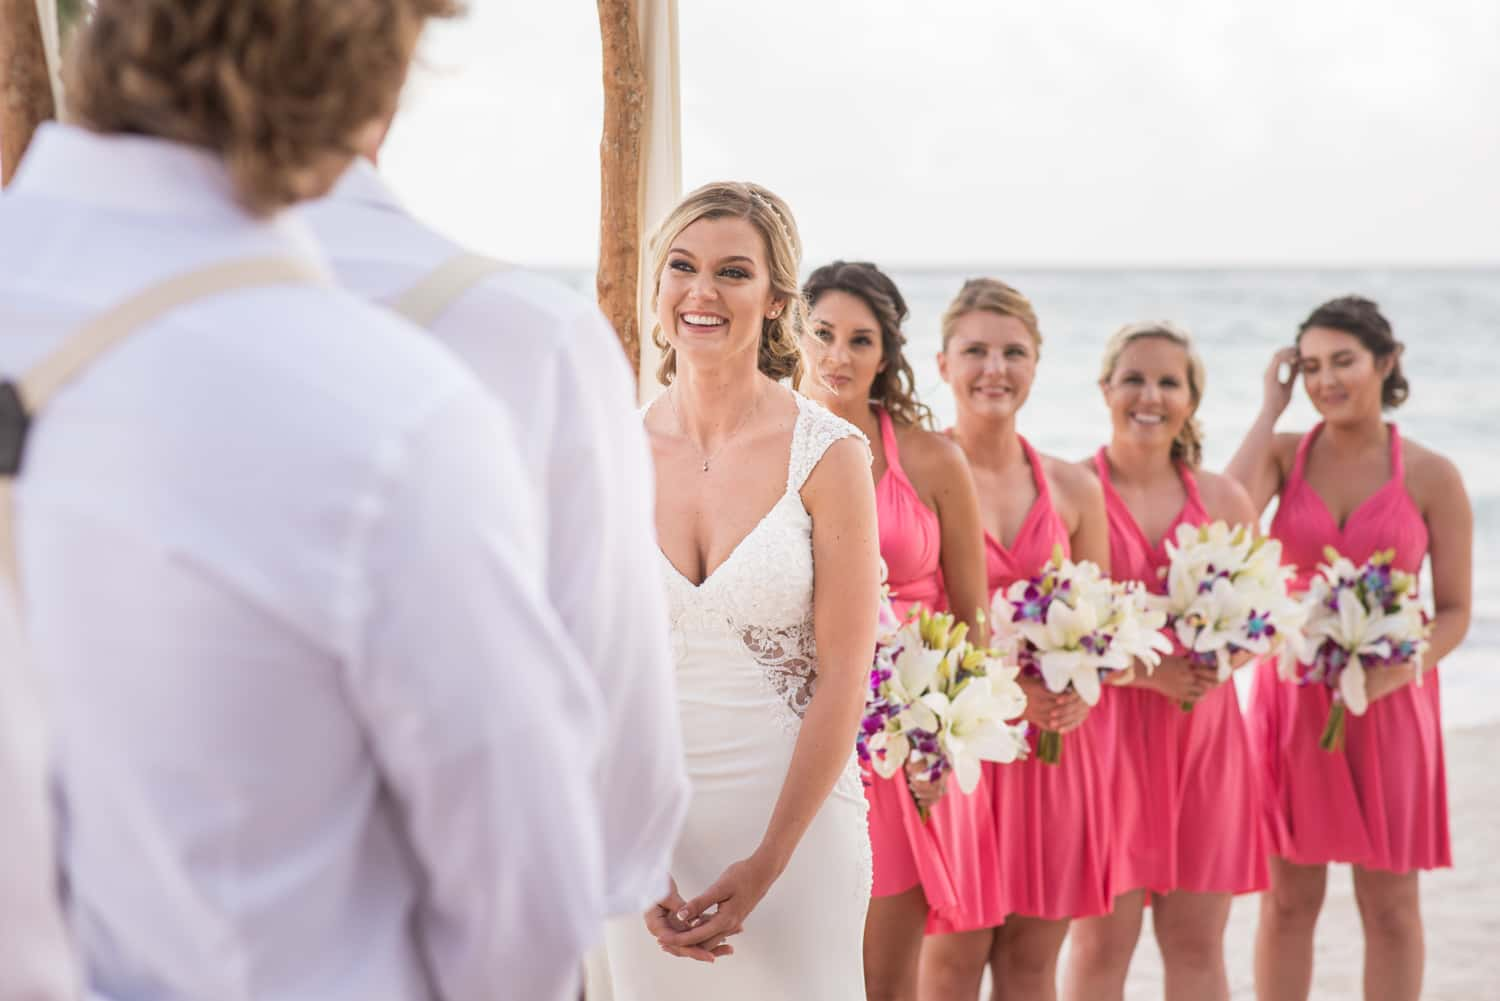 Bride with bridesmaids in pink dresses during beach wedding in Tulum Mexico